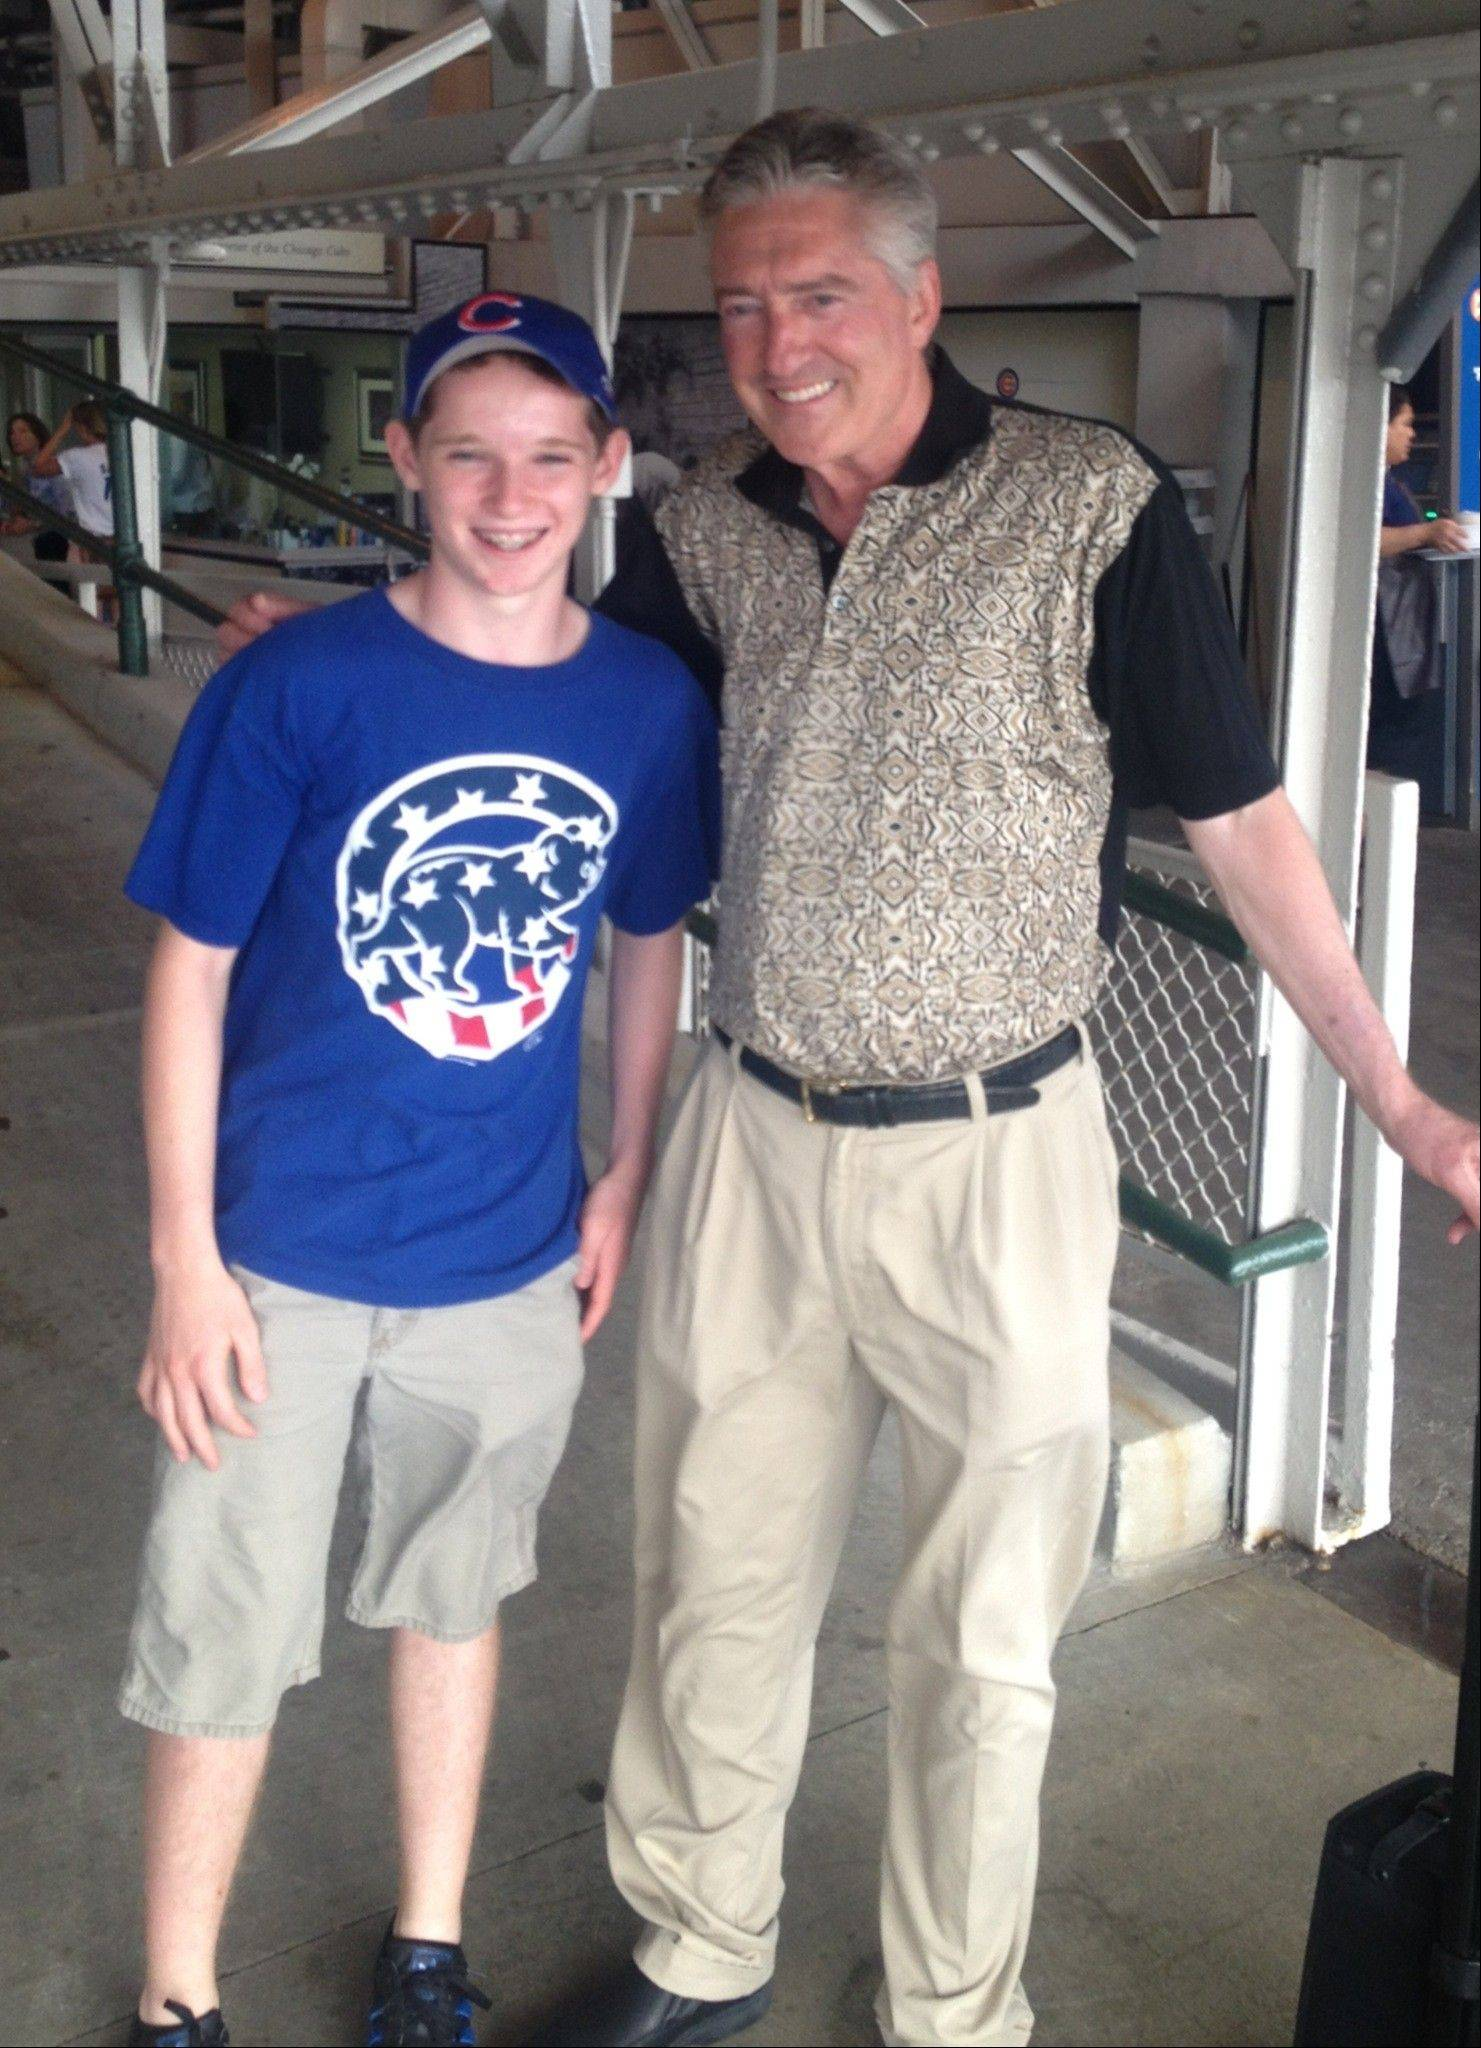 Pat Hughes and Daniel Gerardi of Arlington Heights, in the press box at Wrigley Field.